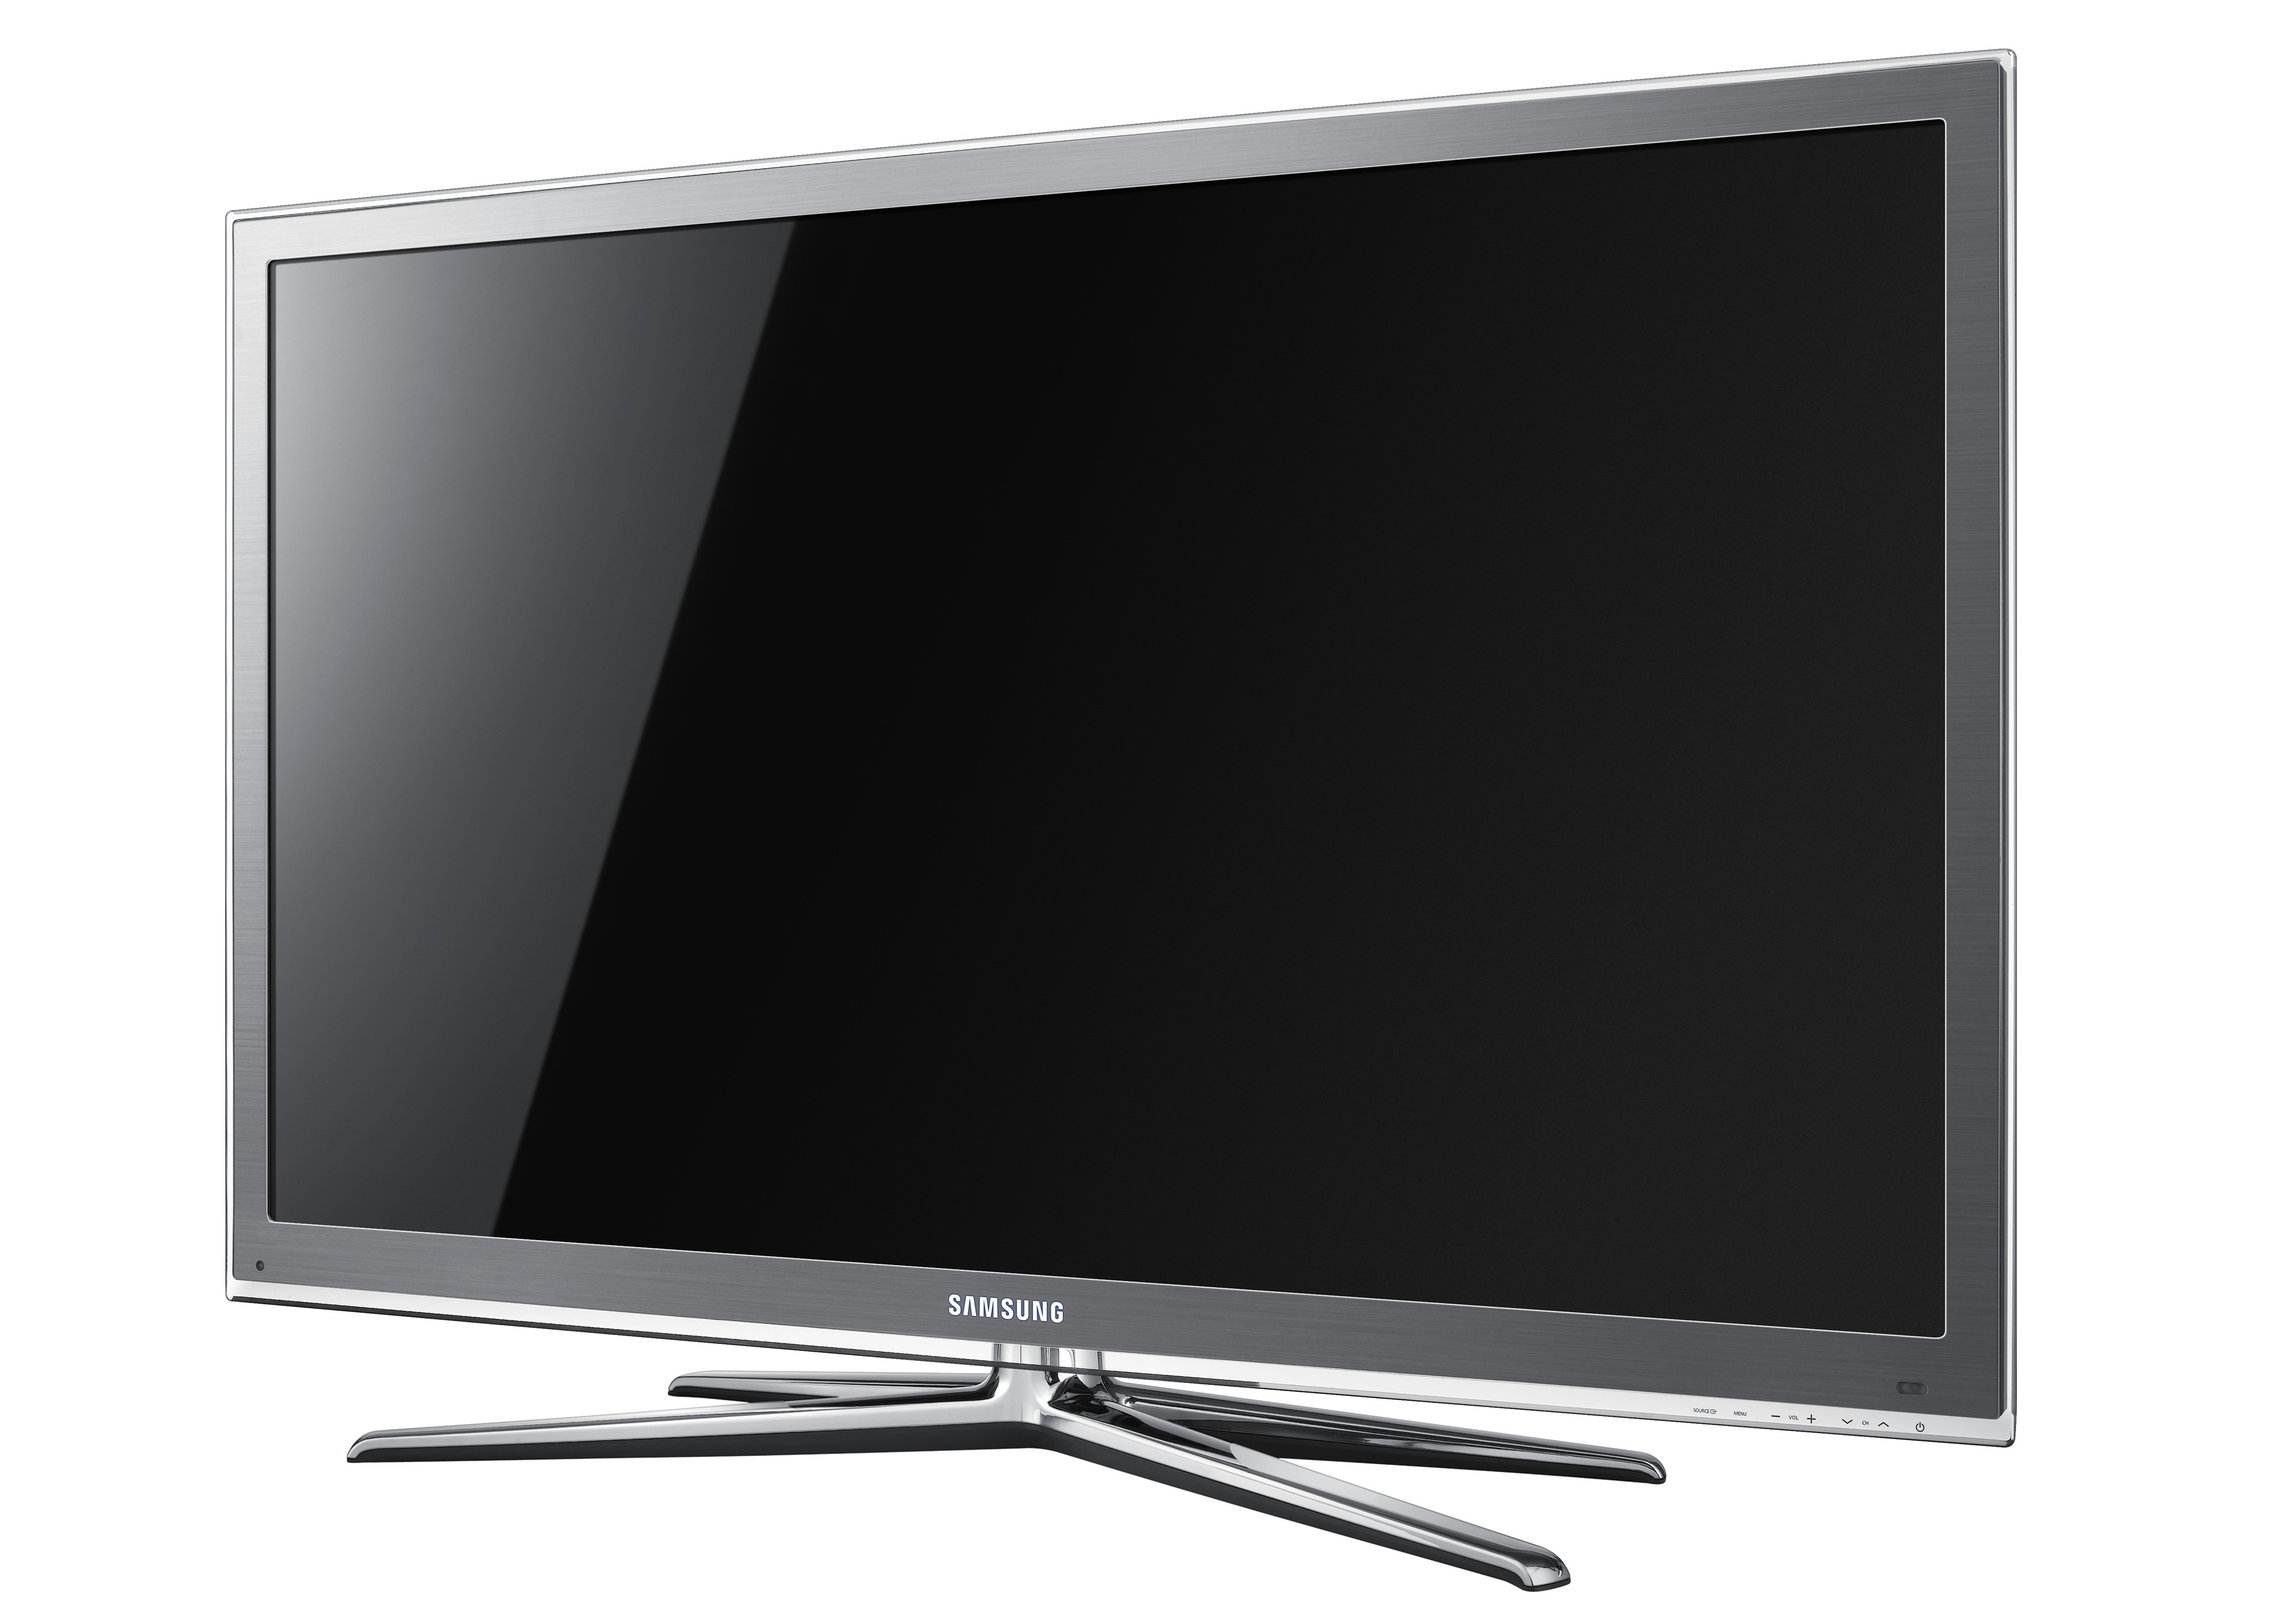 3D TV Without Glasses |Samsung 3d Tv Without Glasses